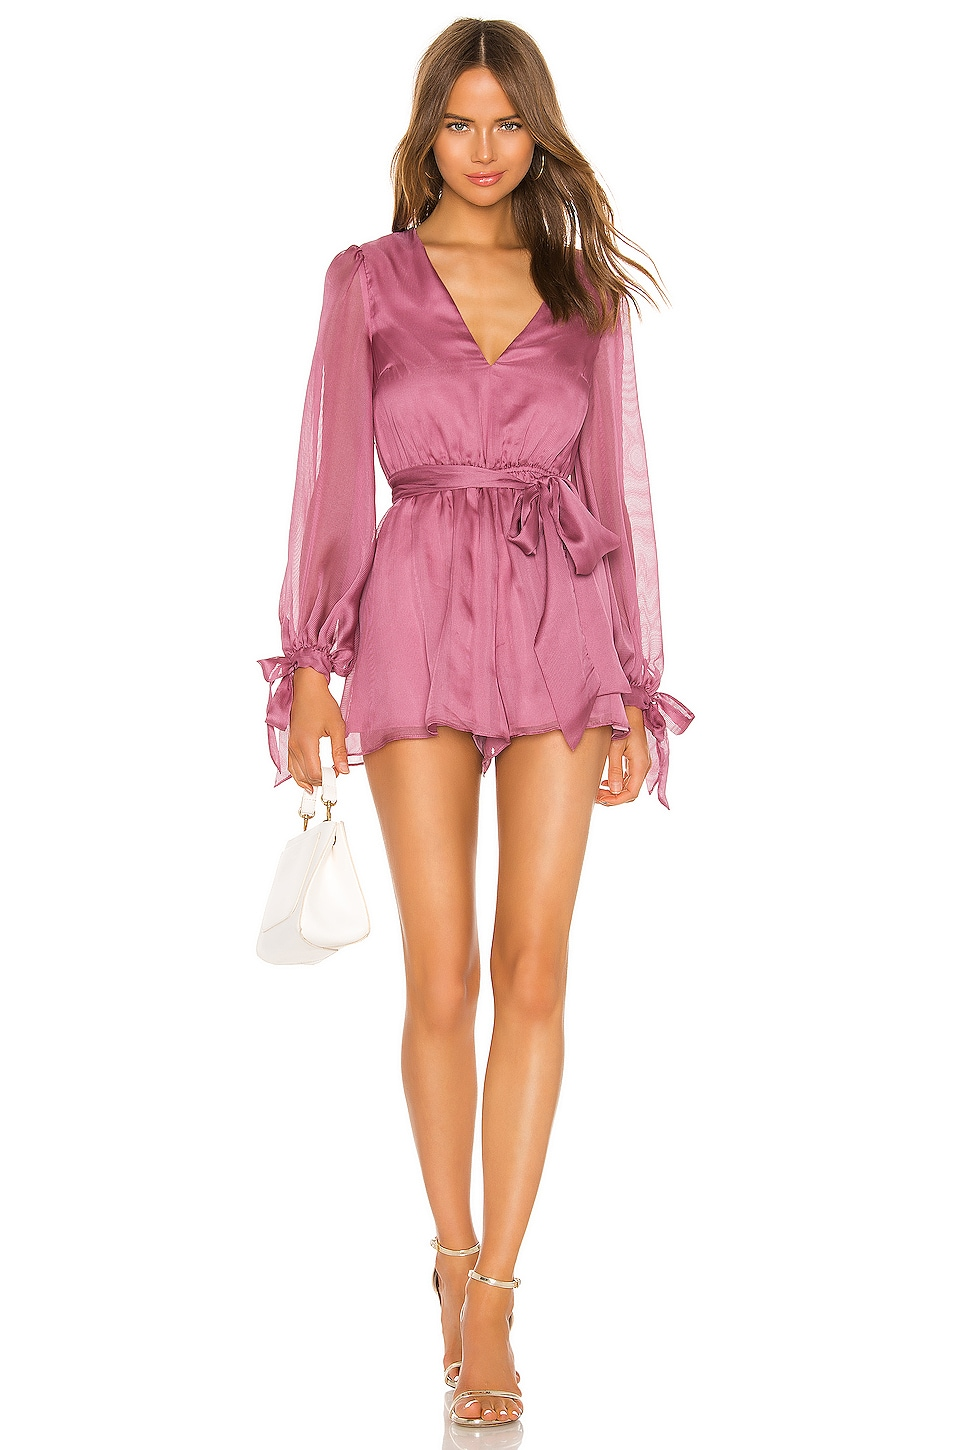 keepsake Cheshire Romper in Mulberry